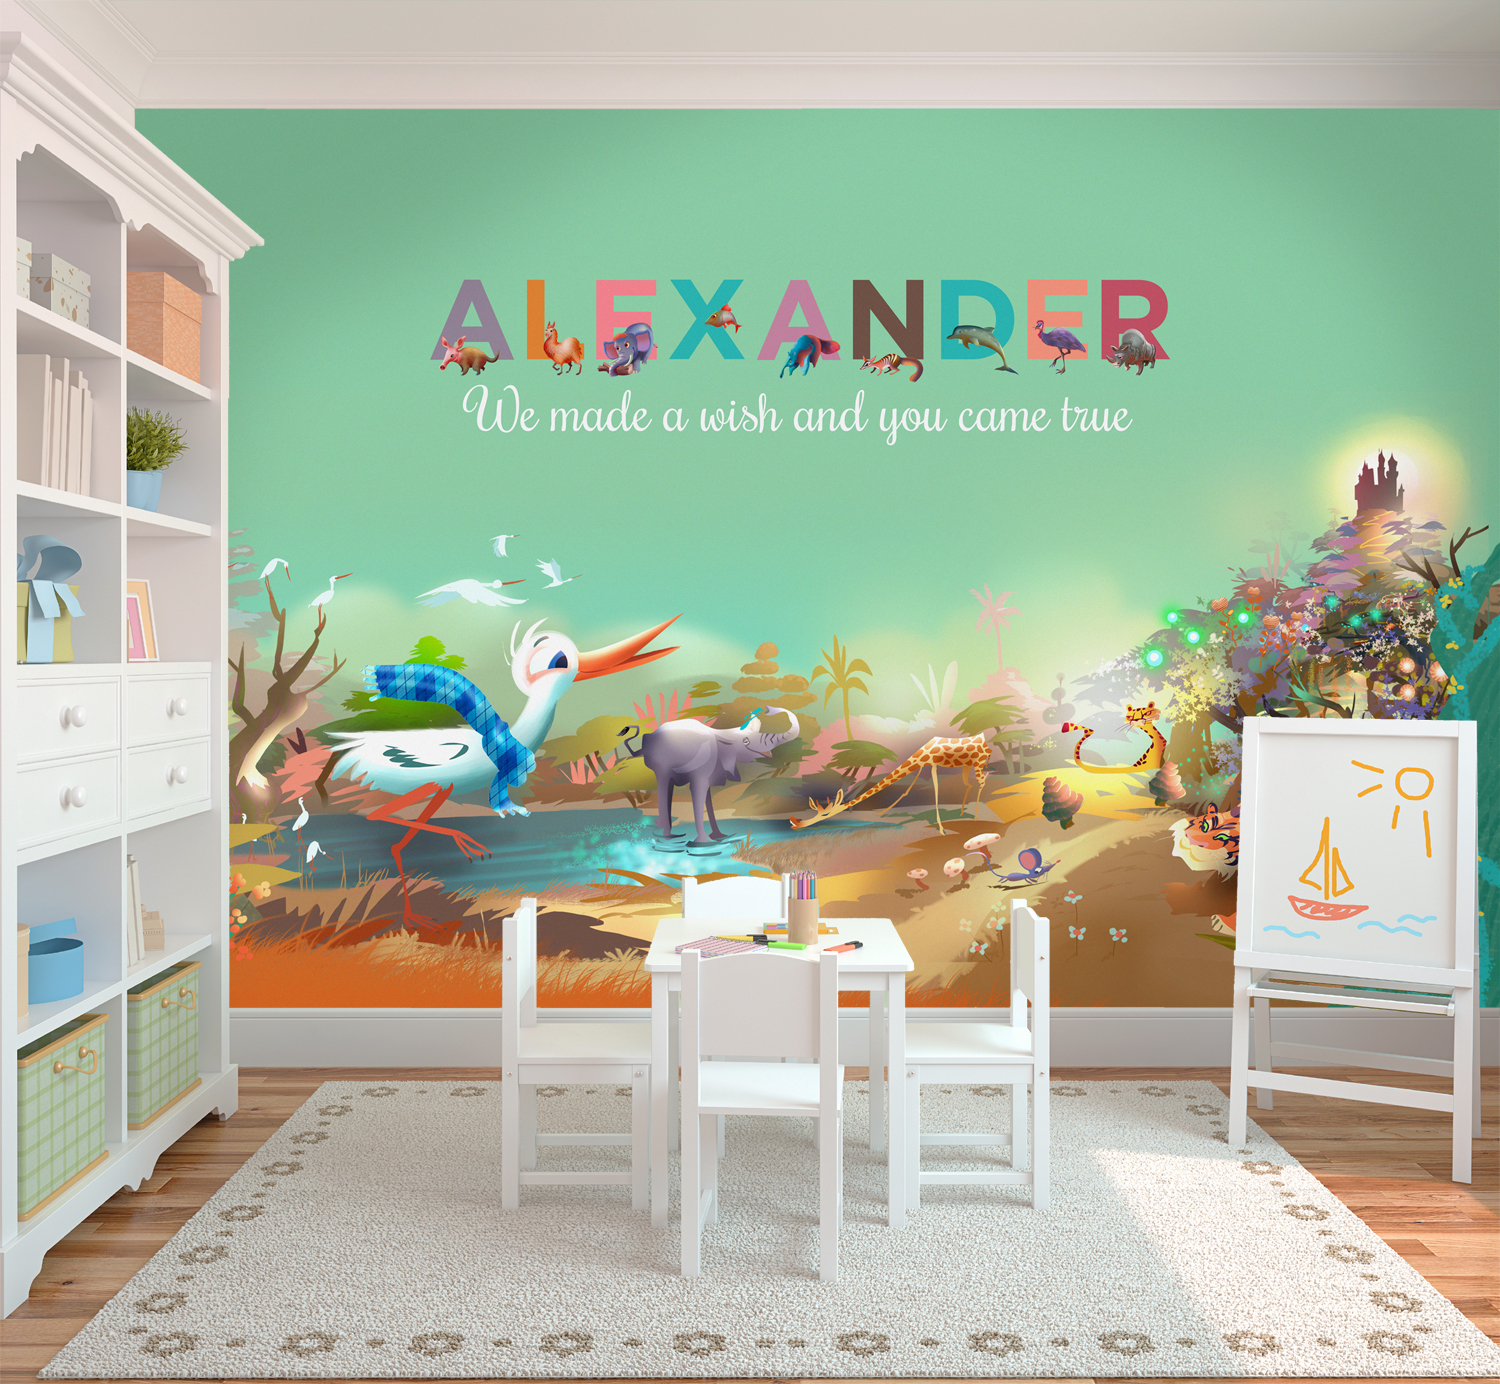 Bringing colour to a baby 39 s room mygivenname for Children room mural